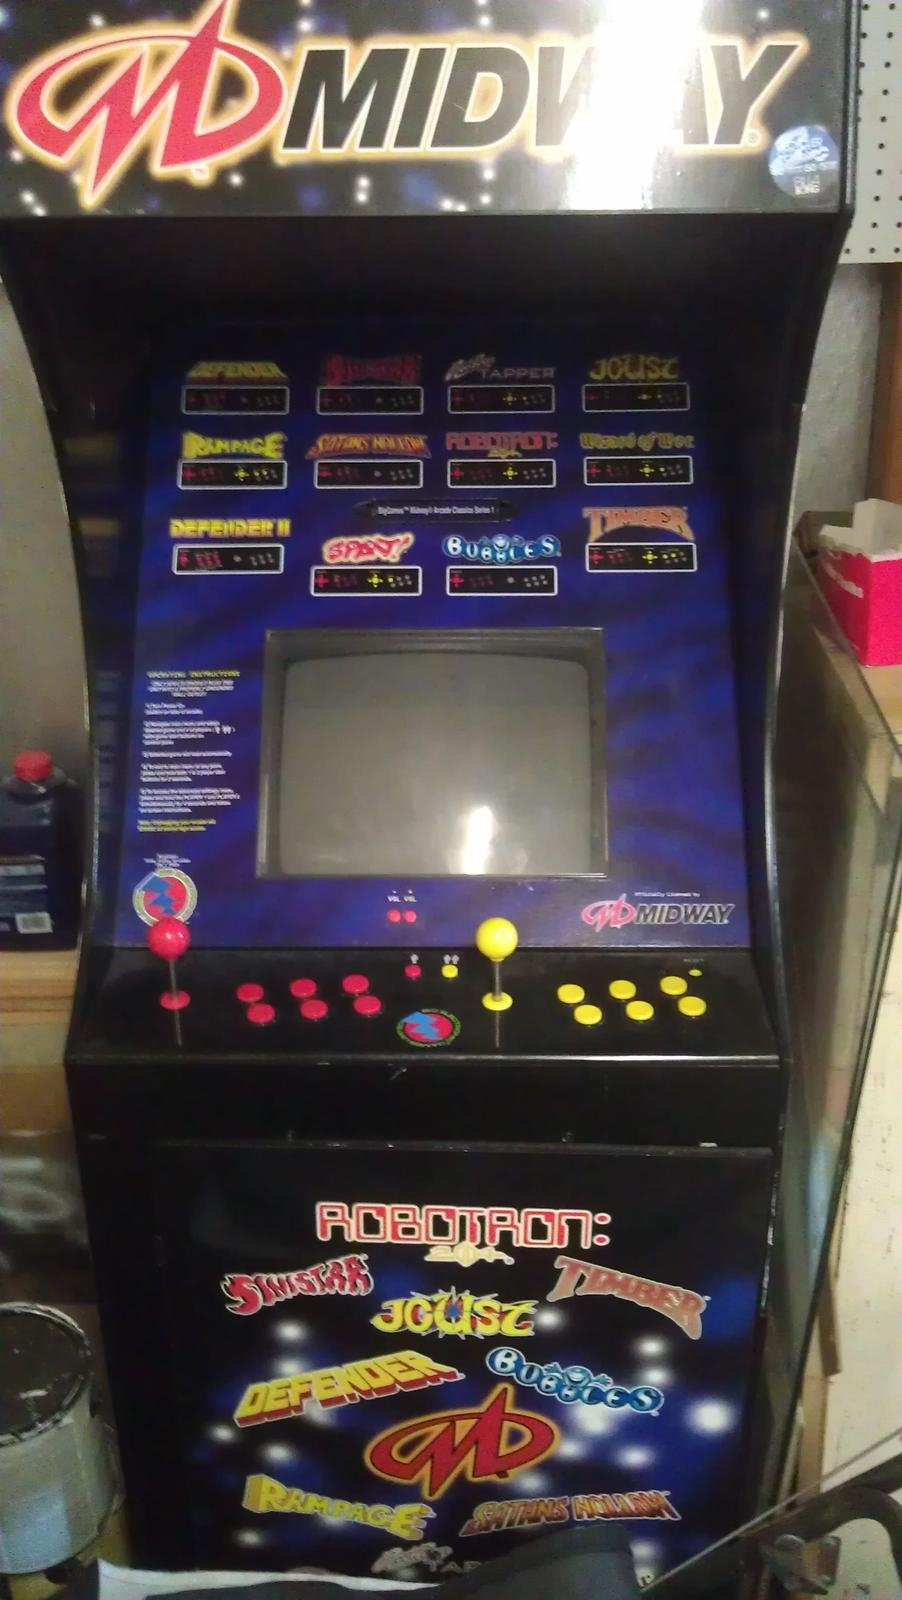 Midway 12in1 video arcade game for sale in Wilmington